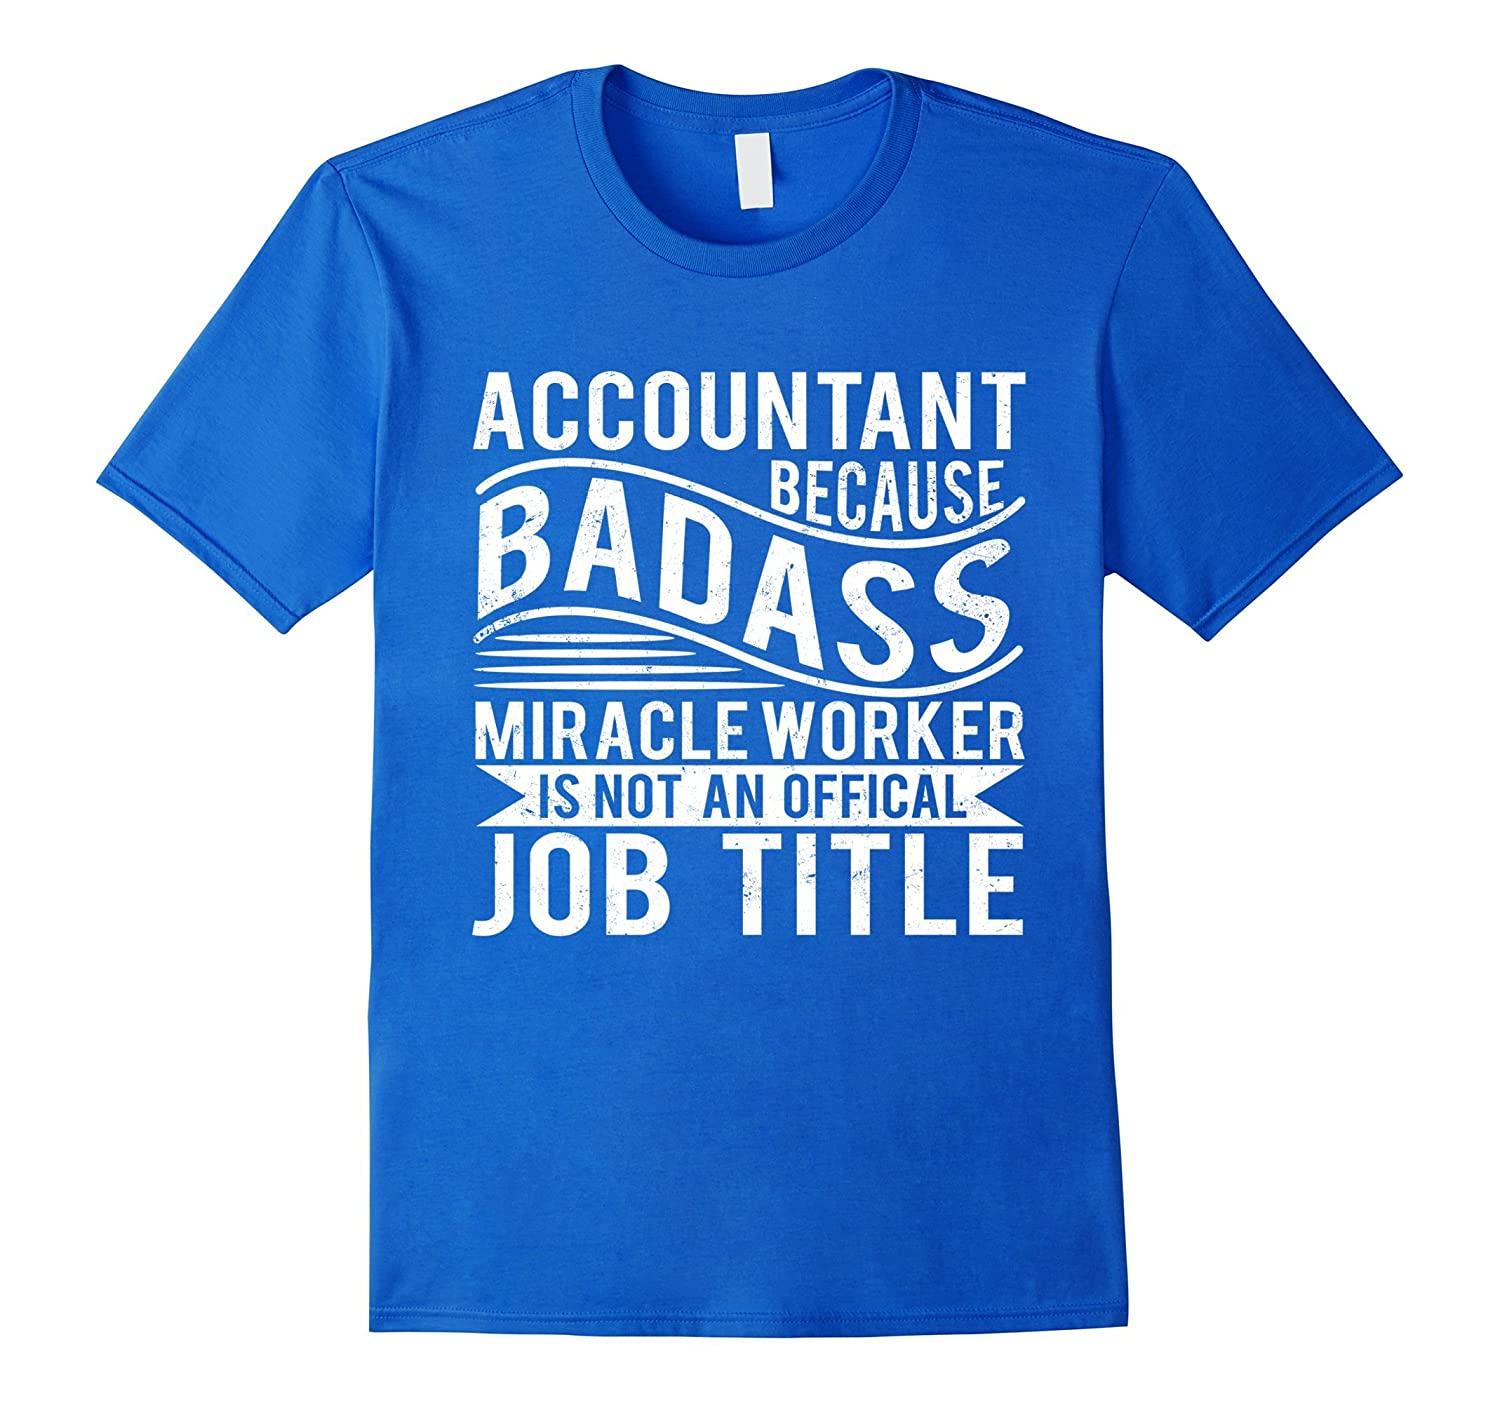 Accountant Because Badass Miracle Worker T-shirt-TJ